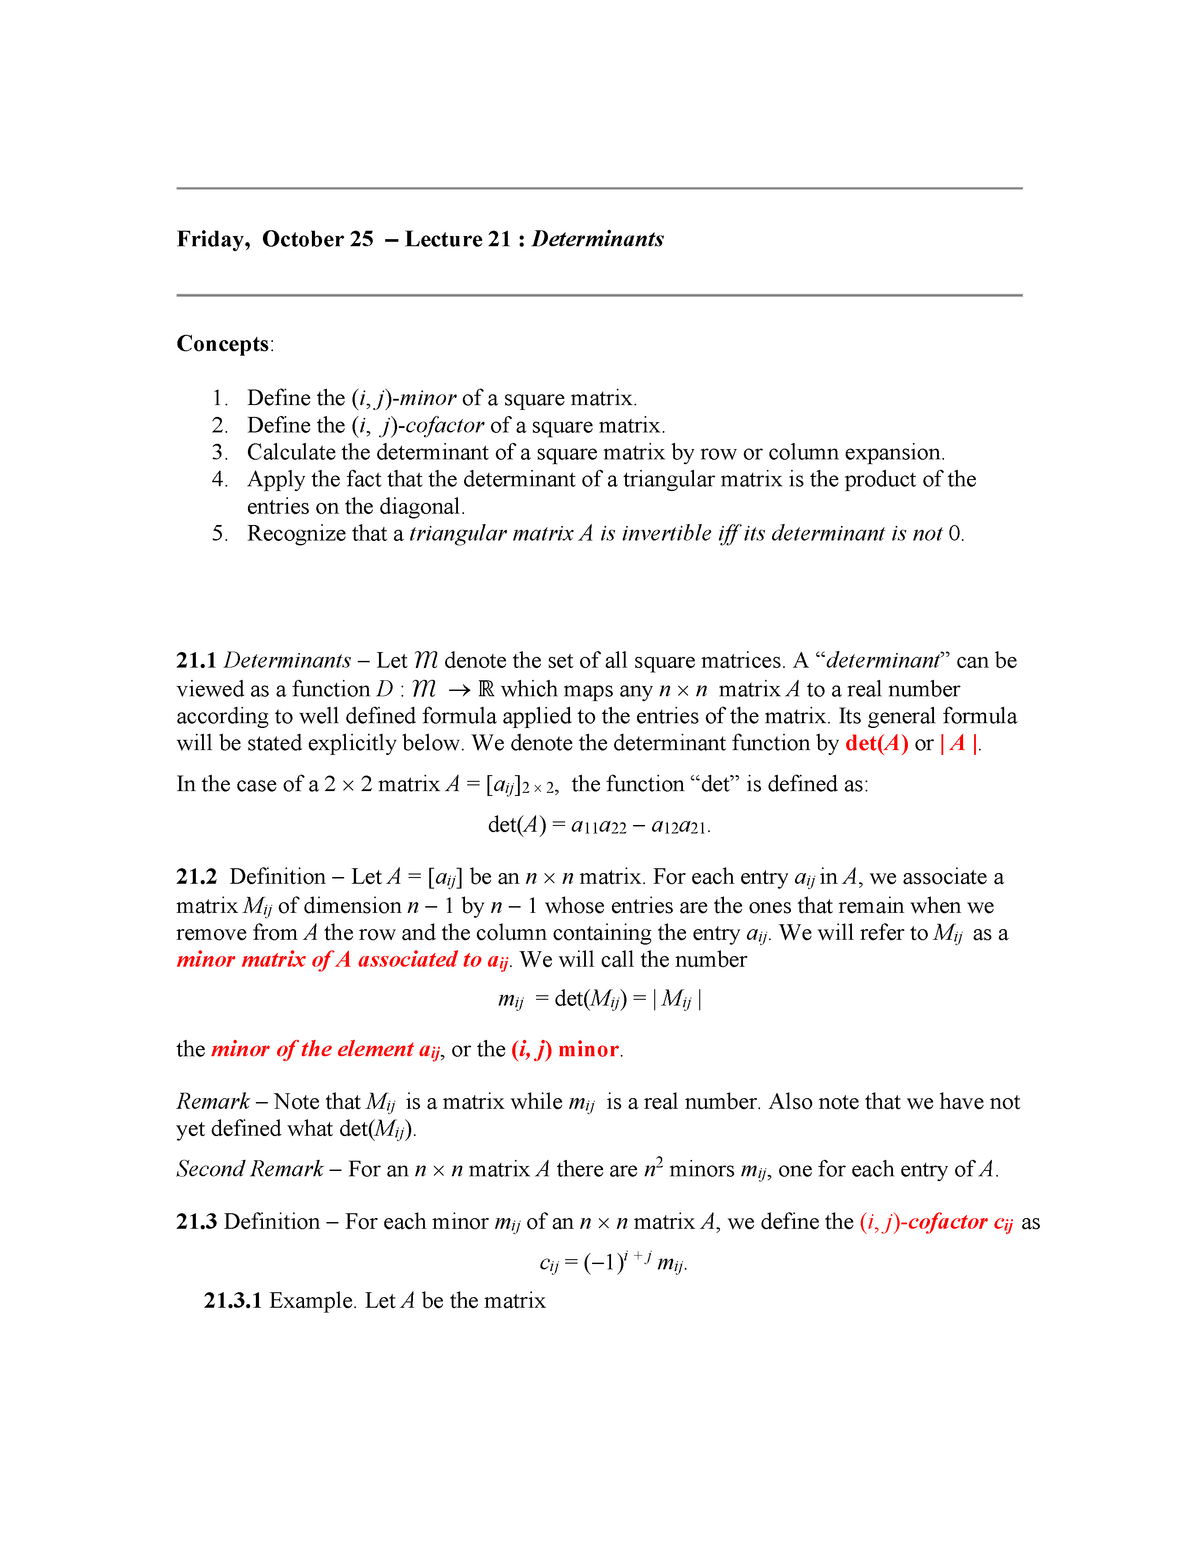 Lect115 21 f14 - Study reference - MATH 115: Linear Algebra for